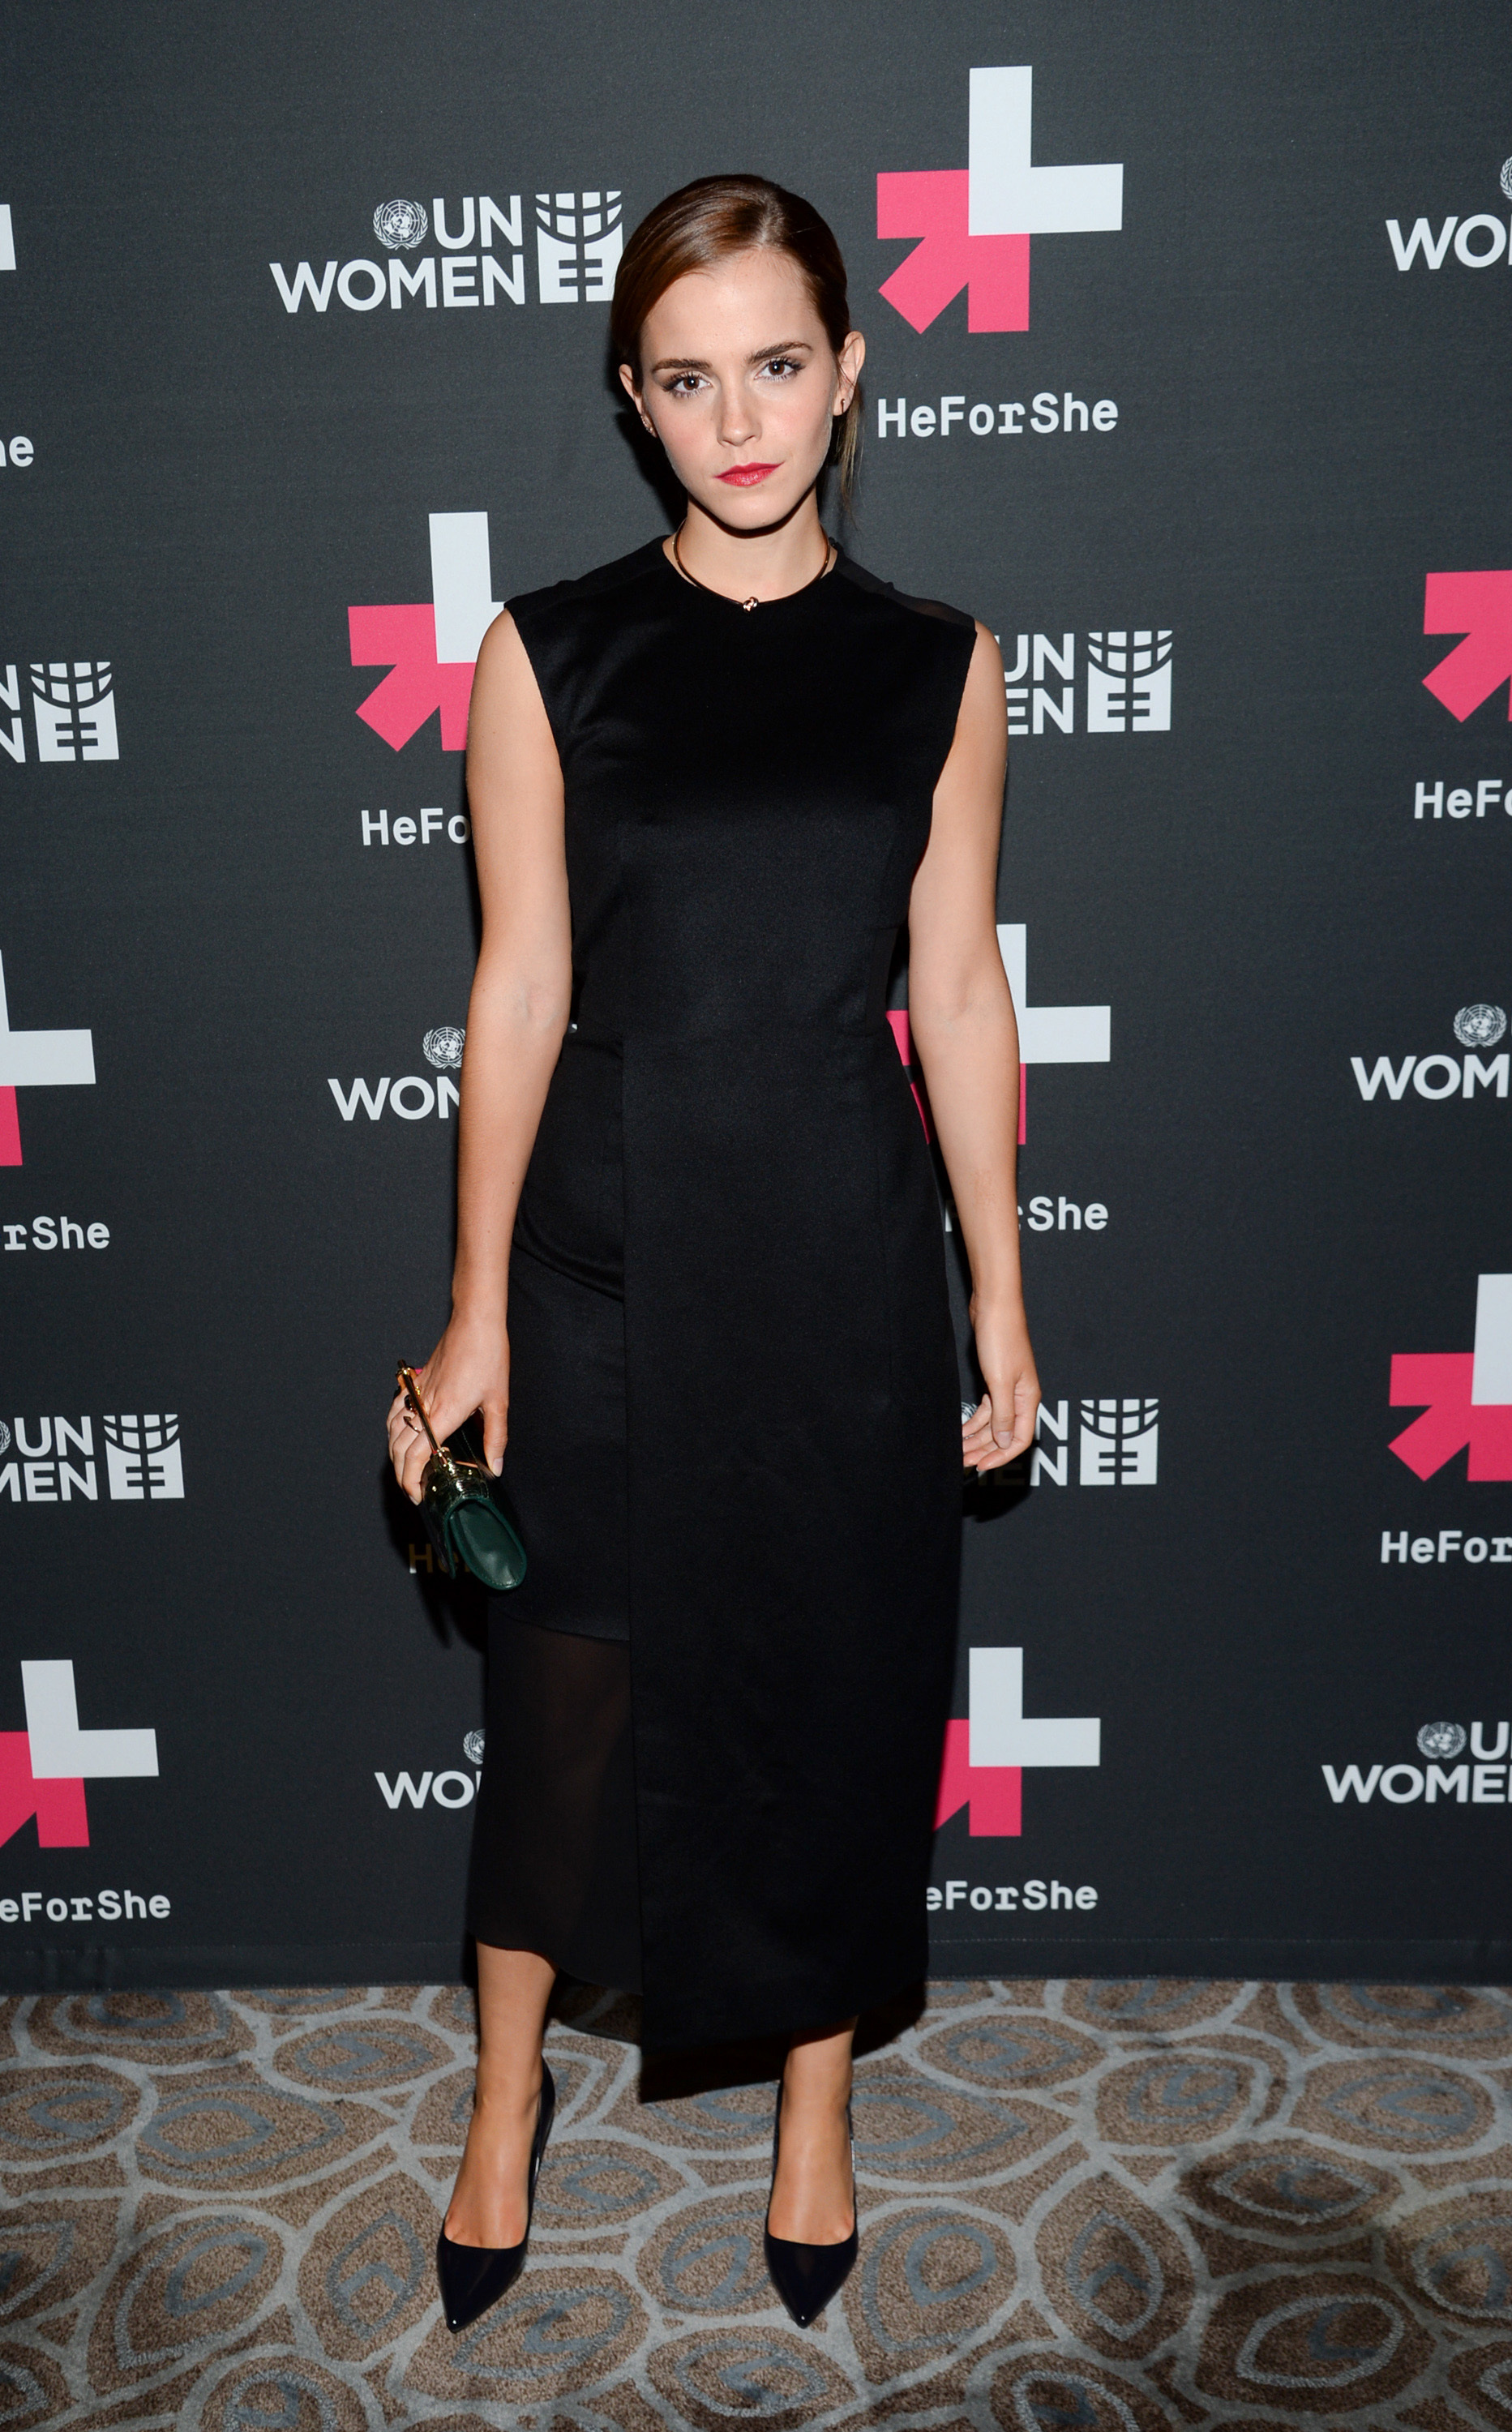 Emma Watson thanks Steve Carell for his #HeForShe fashion choice